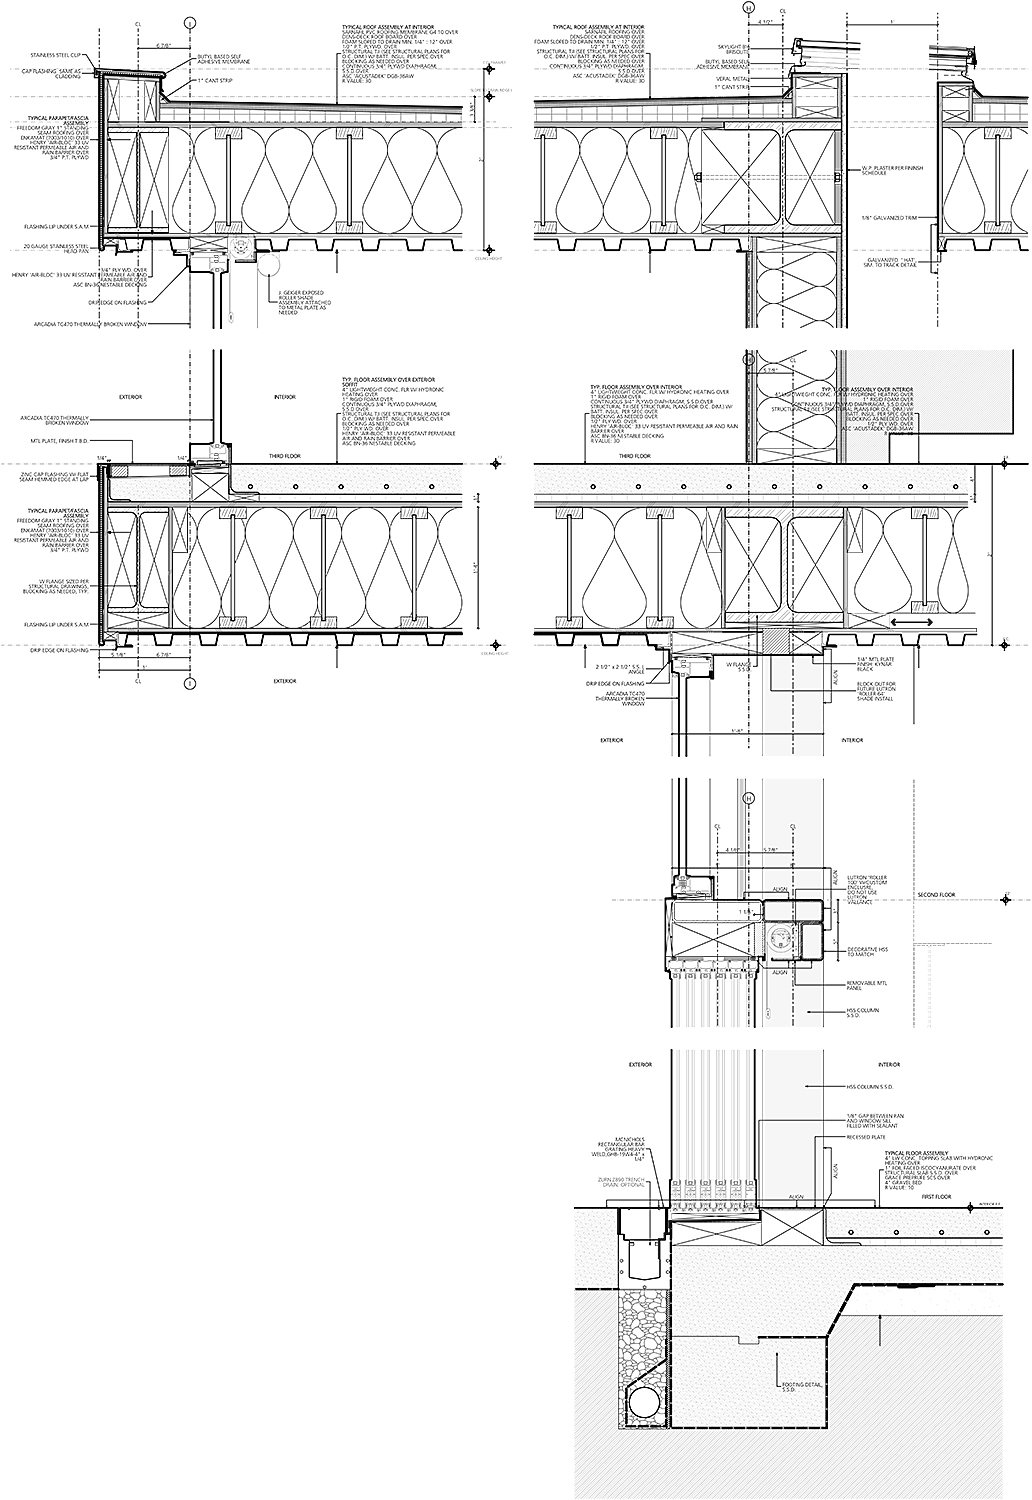 Technical Drawing: Section Details OPA}